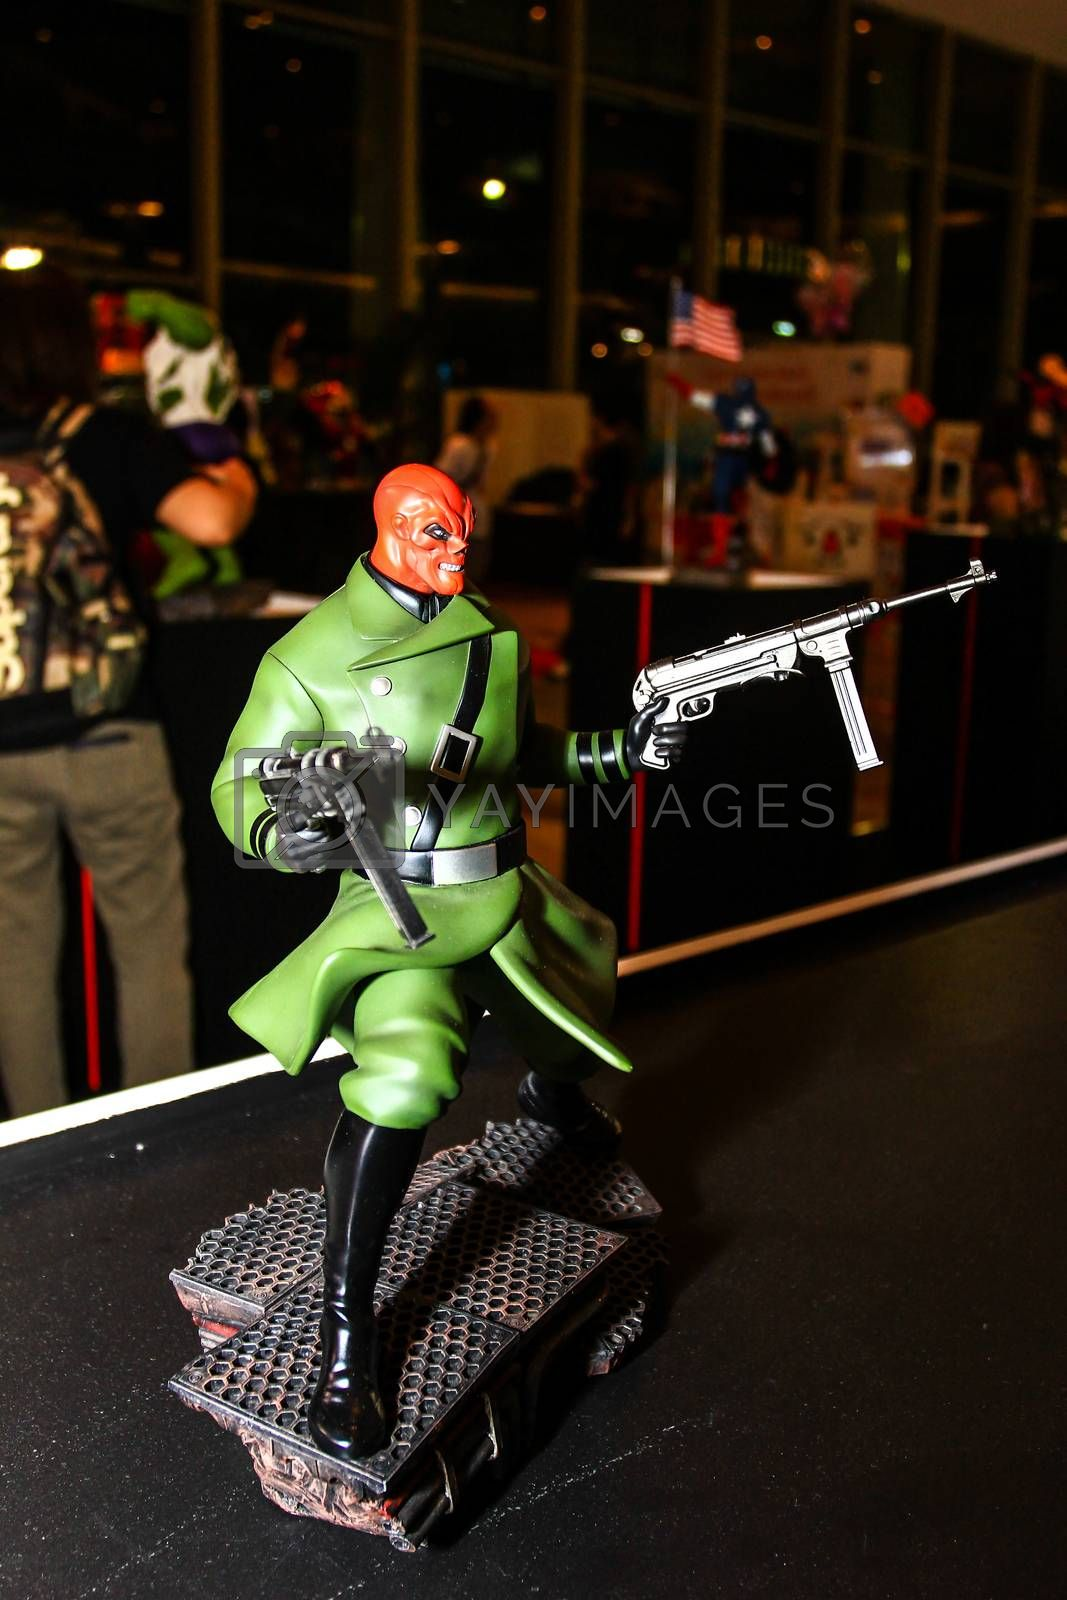 Royalty free image of A model of the character from the movies and comics by redthirteen